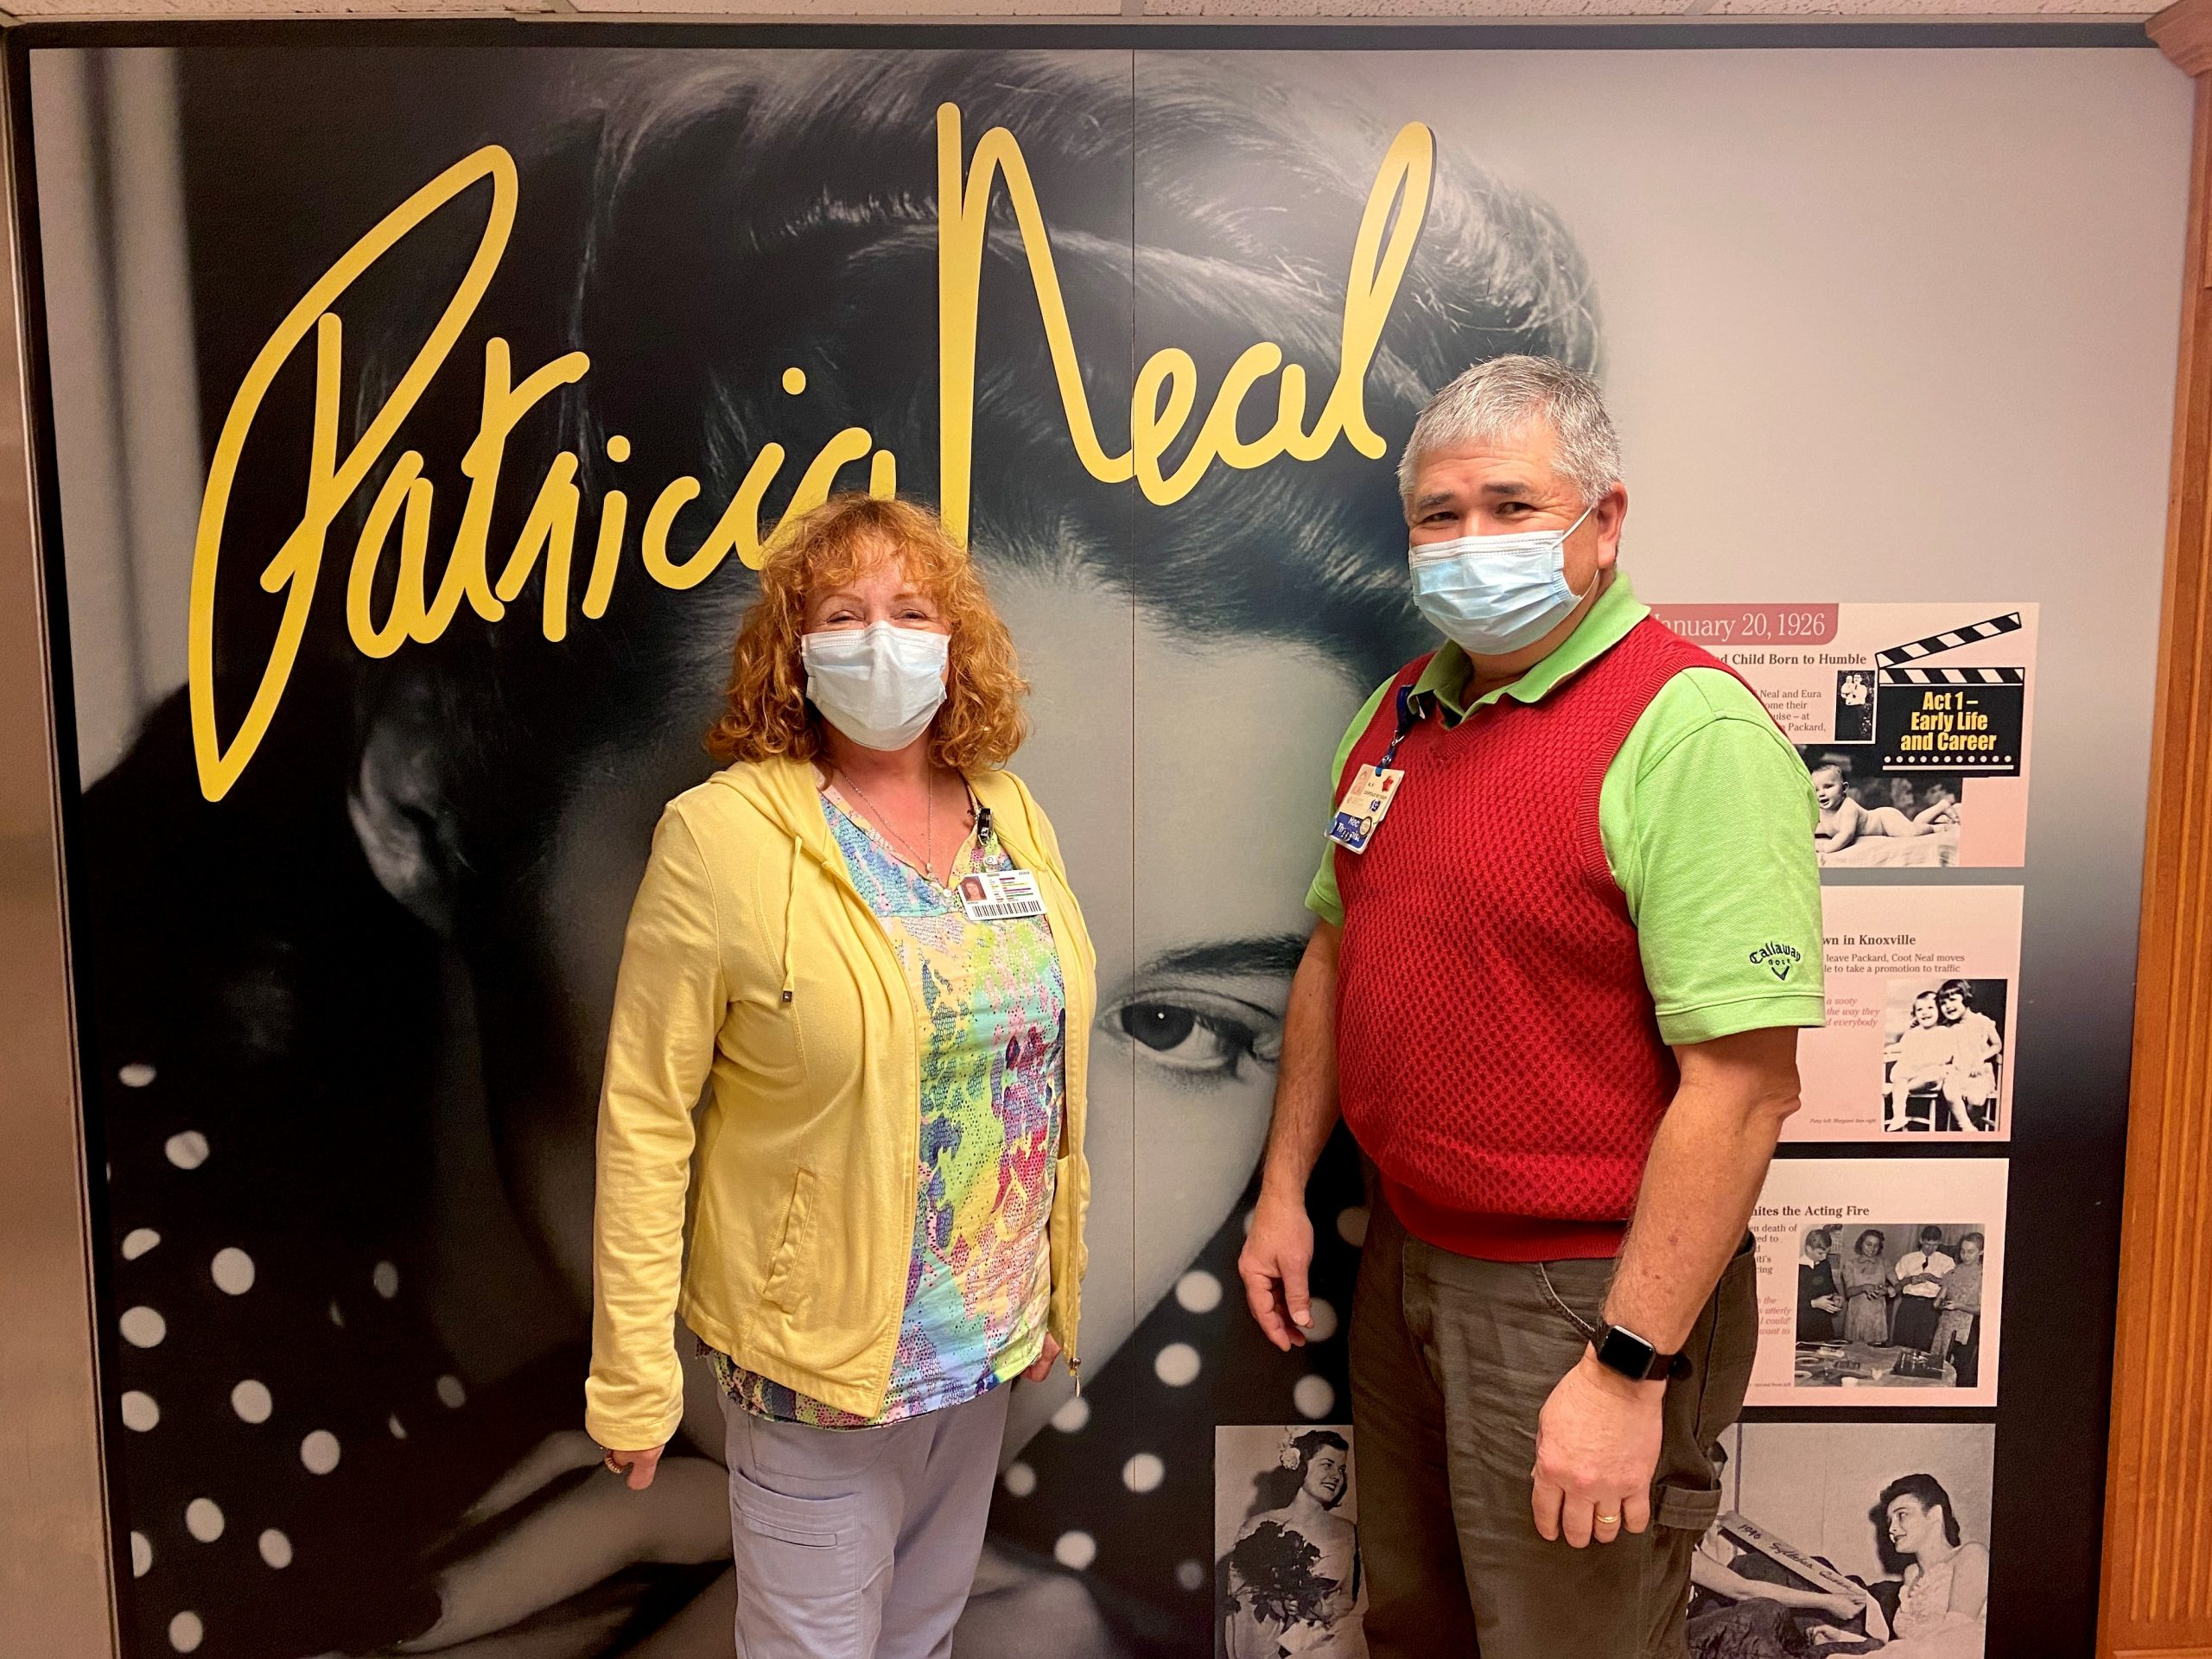 Theresa Asbury and Al Kaye, recreation therapists at Patricia Neal Rehabilitation Center